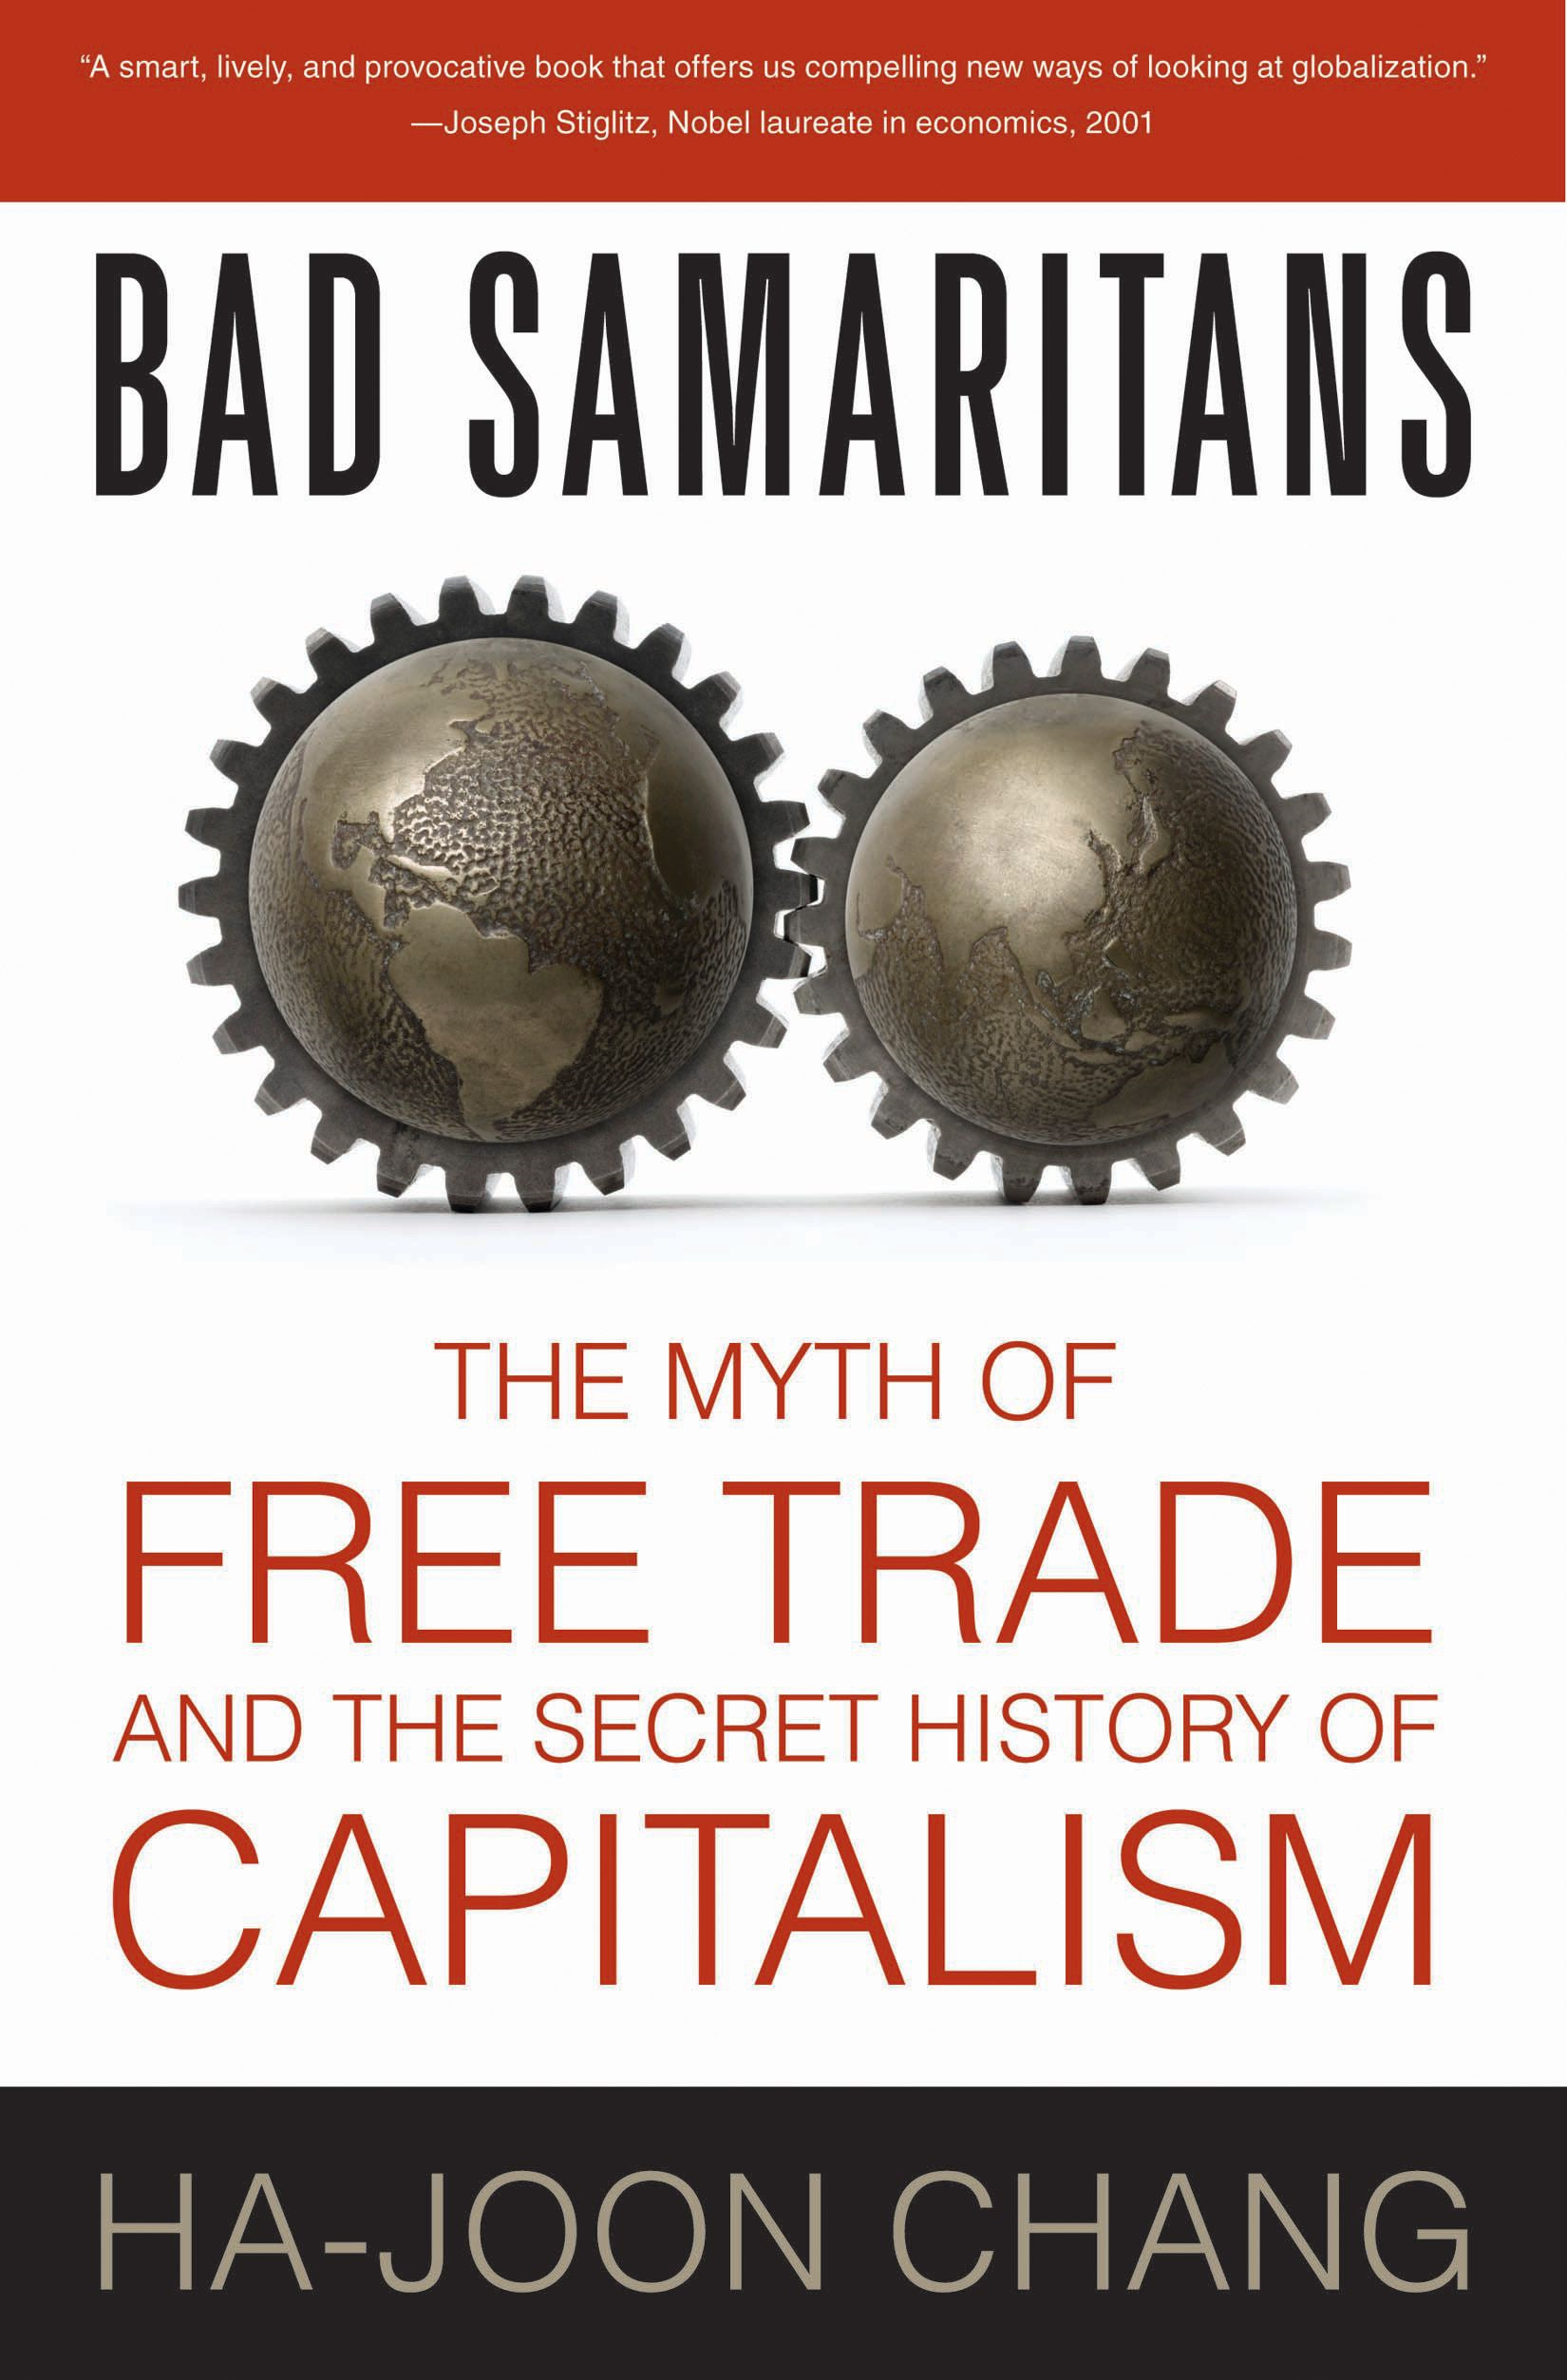 Bad Samaritans: The Myth of Free Trade and the Secret History of Capitalism By: Ha-Joon Chang